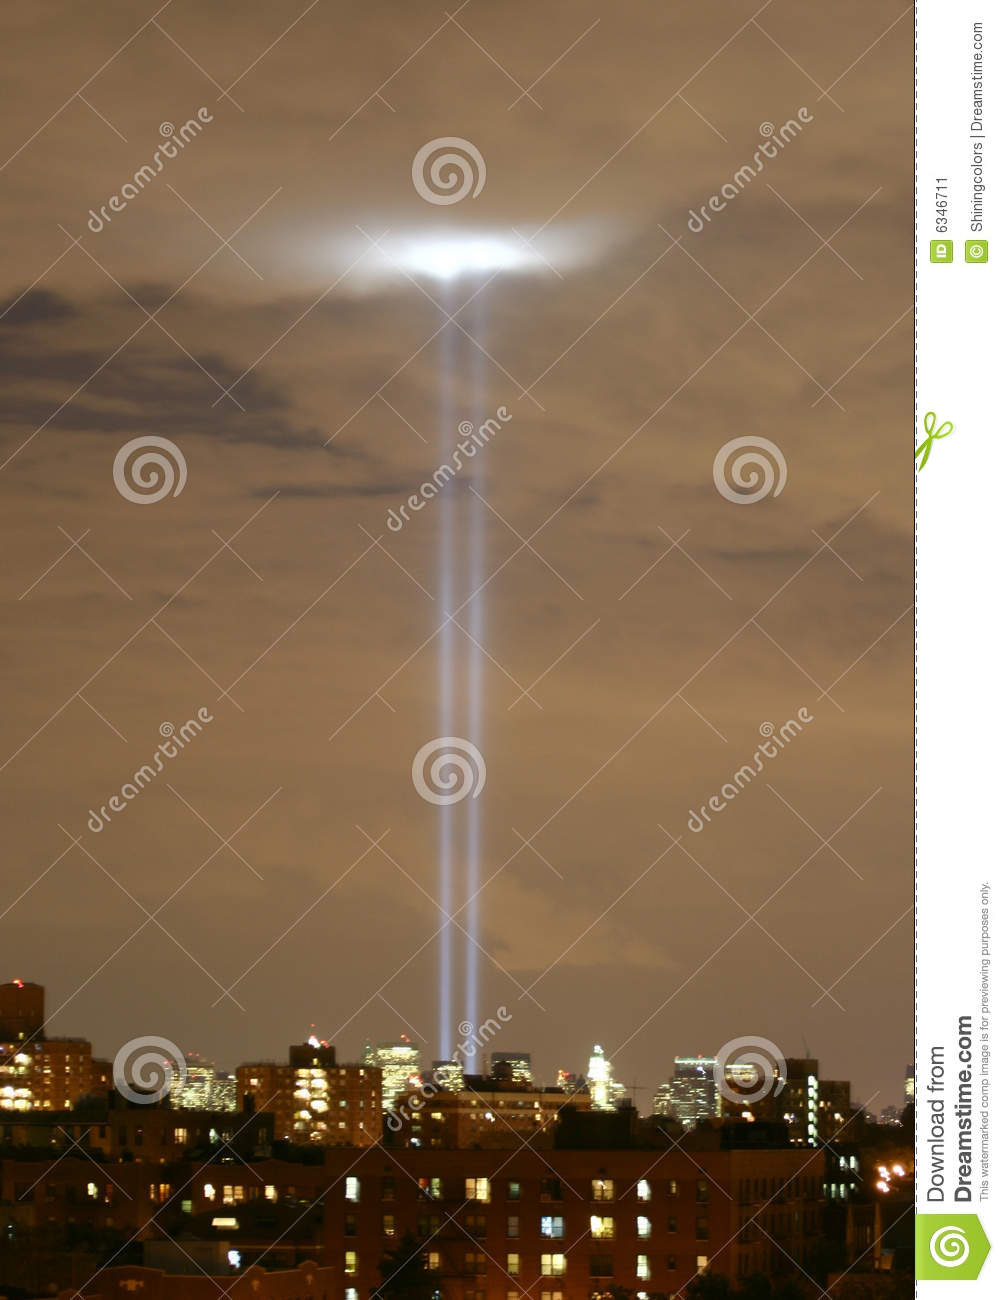 ... of light represent the World Trade Center twin towers shine upwards